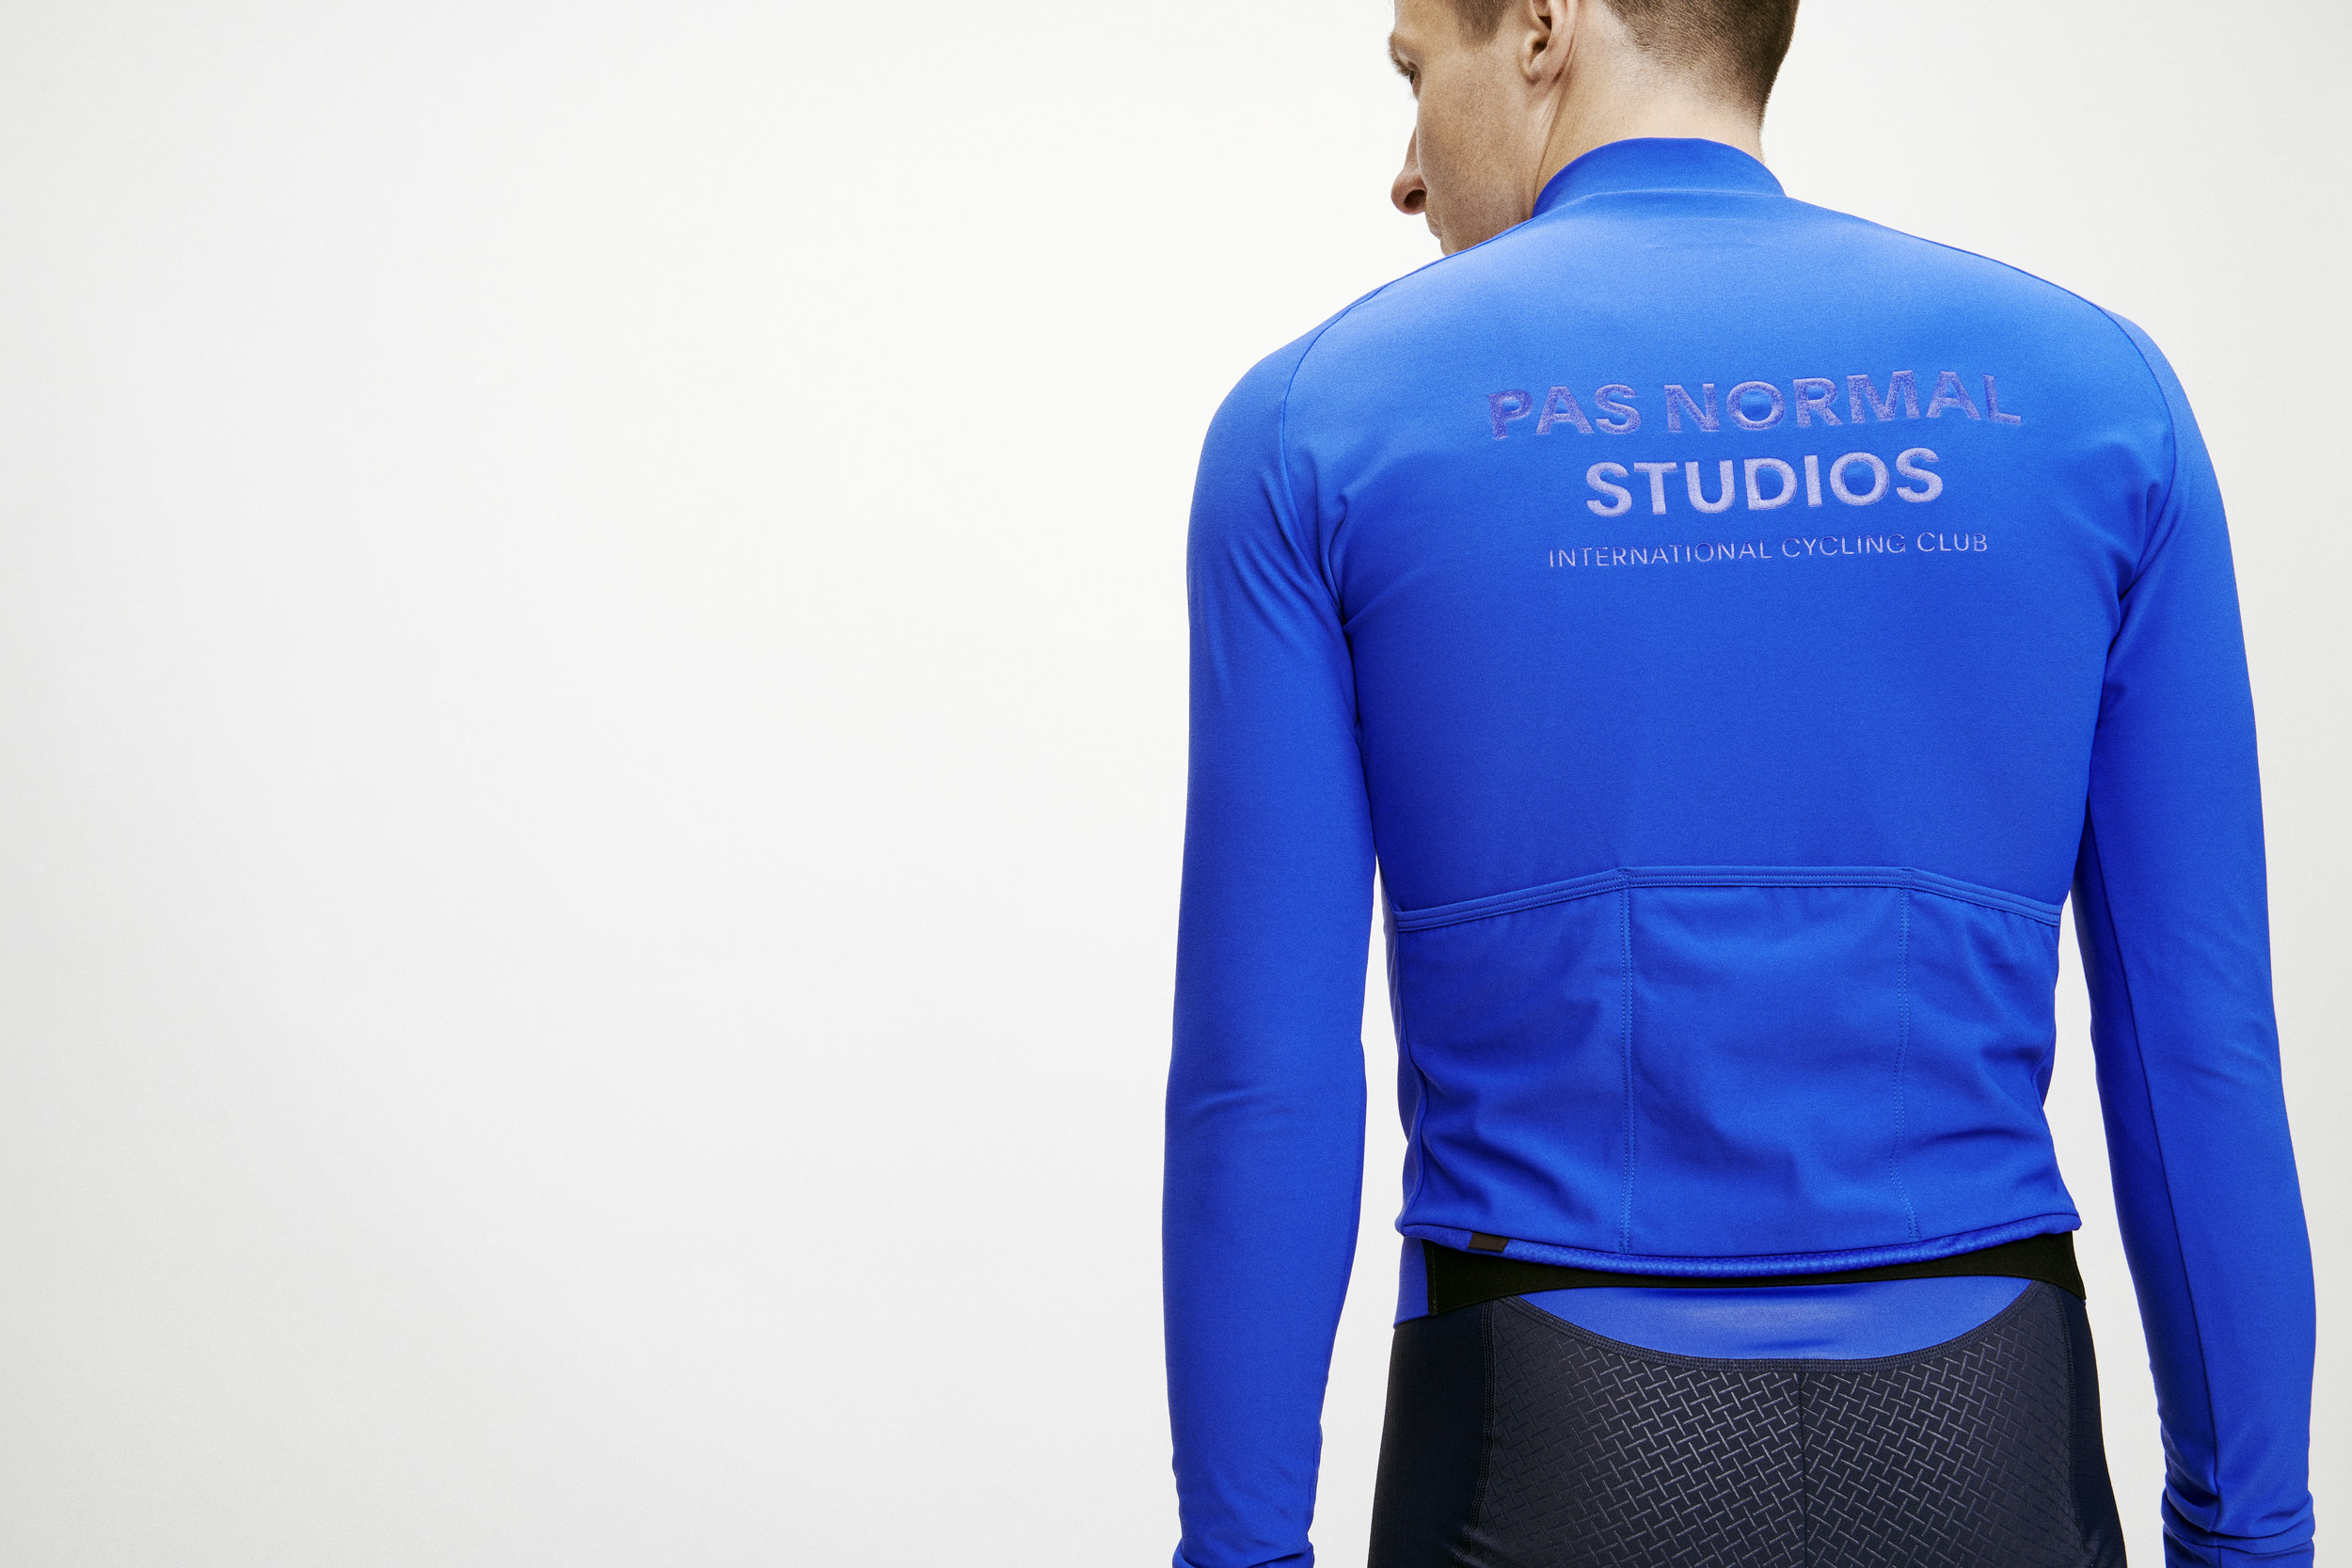 April 2018   Collaboration with Pas Normal Studios  Bike brand number 10 in LTP Garment    READ MORE